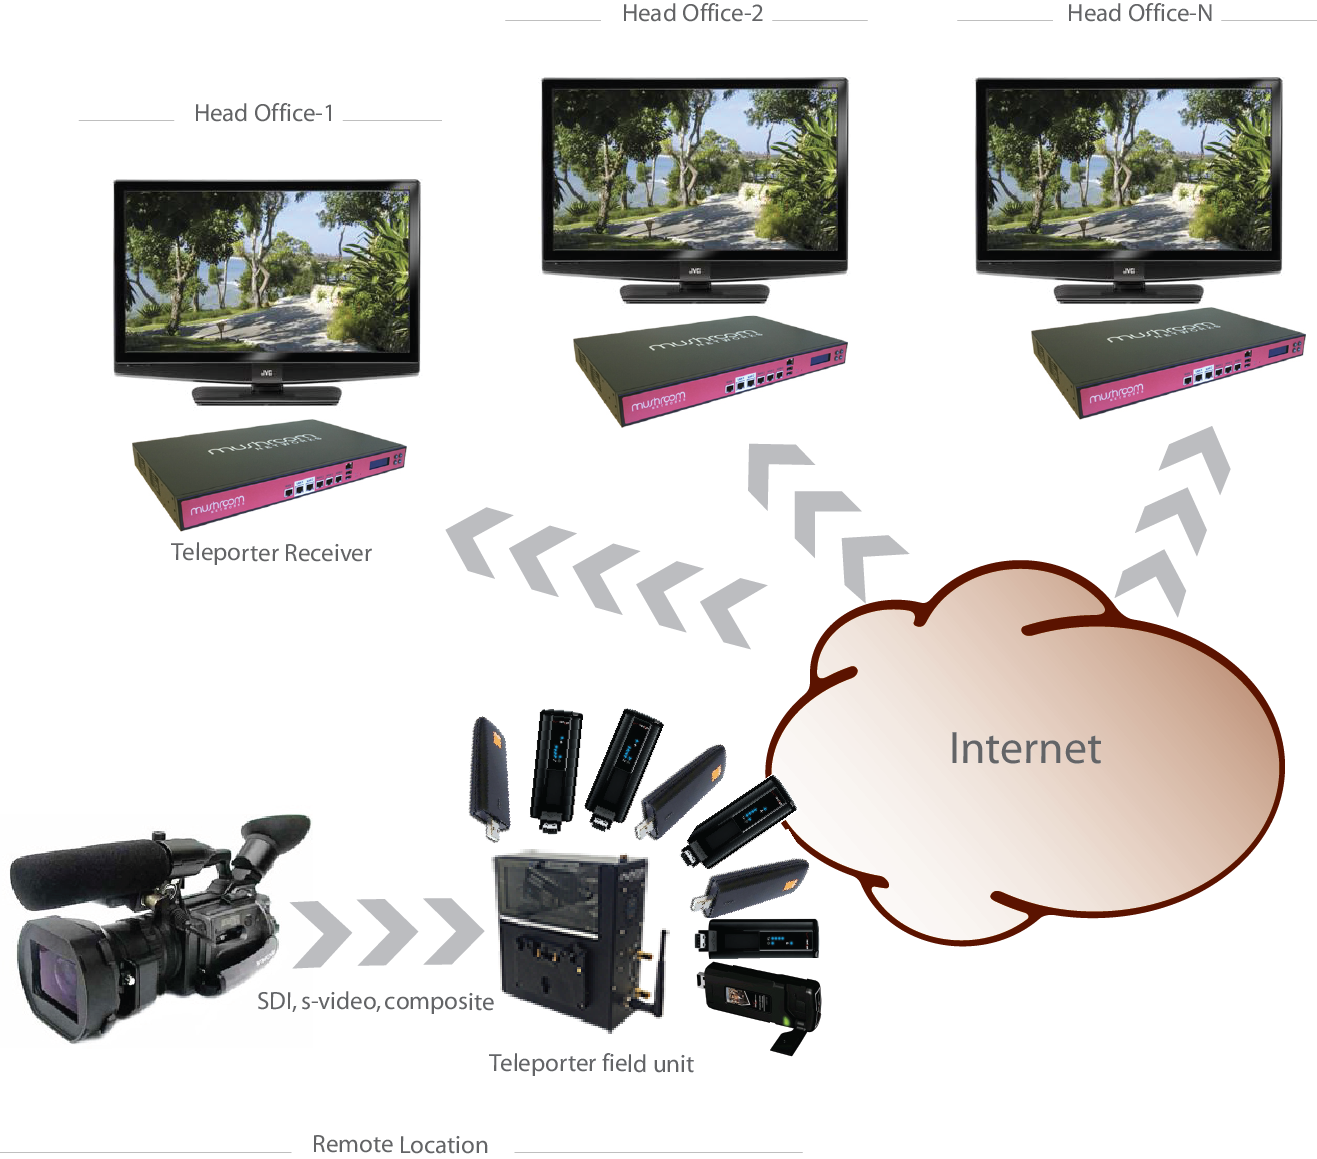 Teleporter is a remote video delivery solution that can transmit live video over 3G 4G wireless